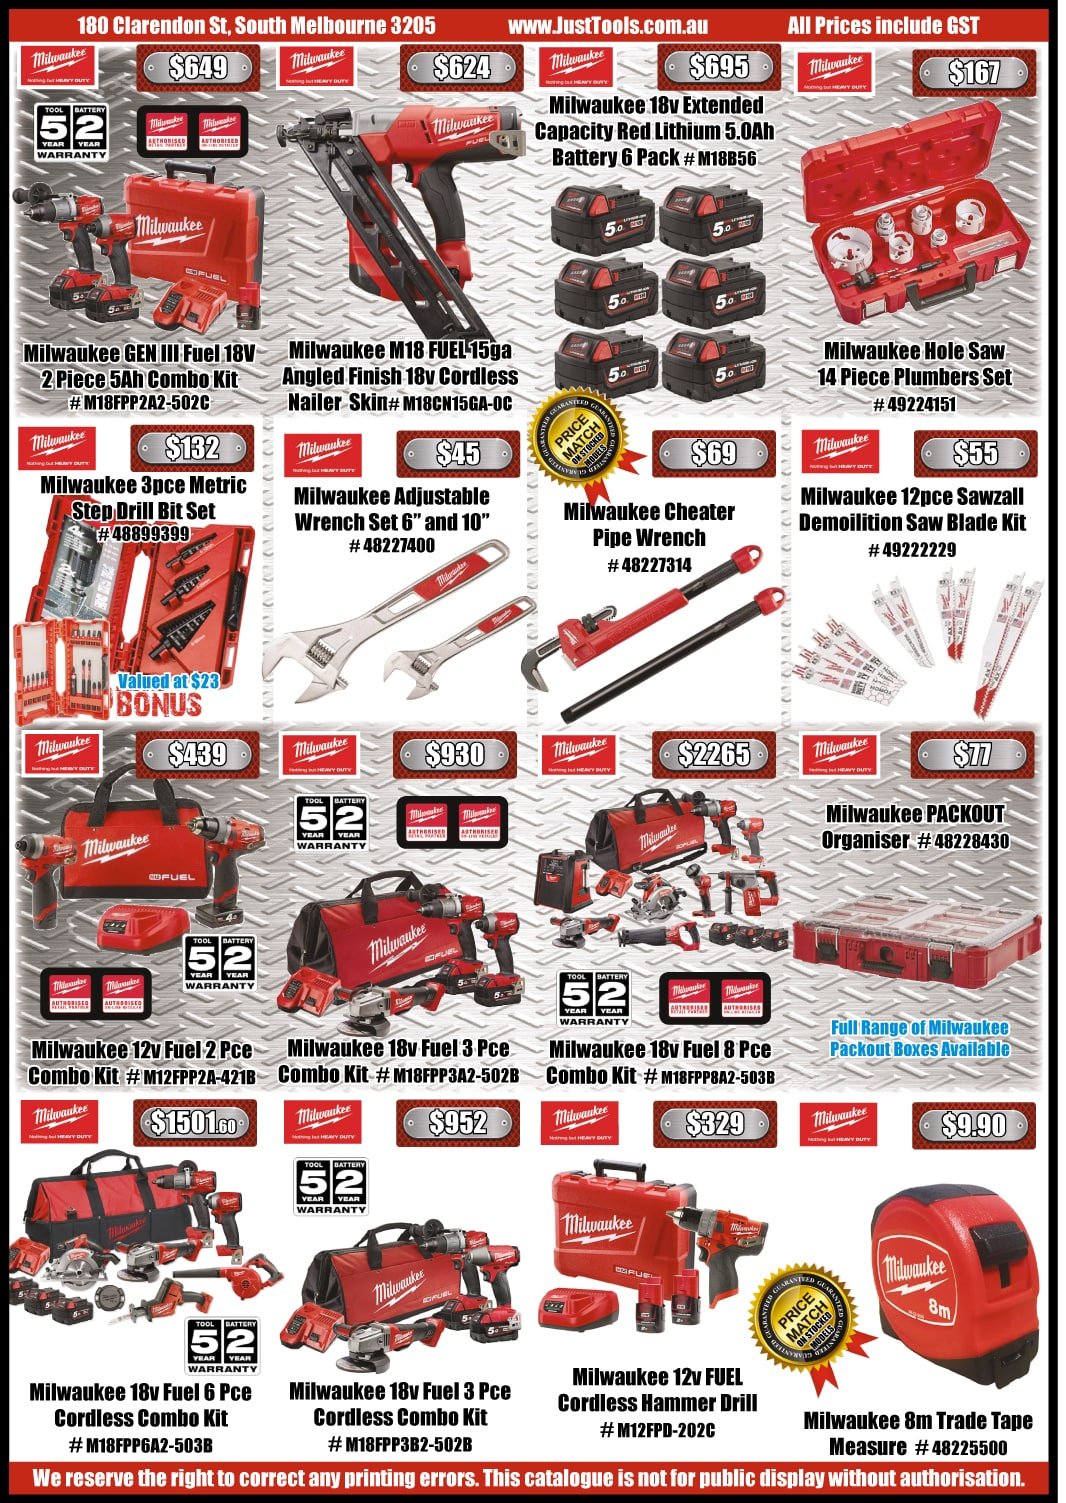 just-tools-stocktake-july2019-pg02-min.jpg